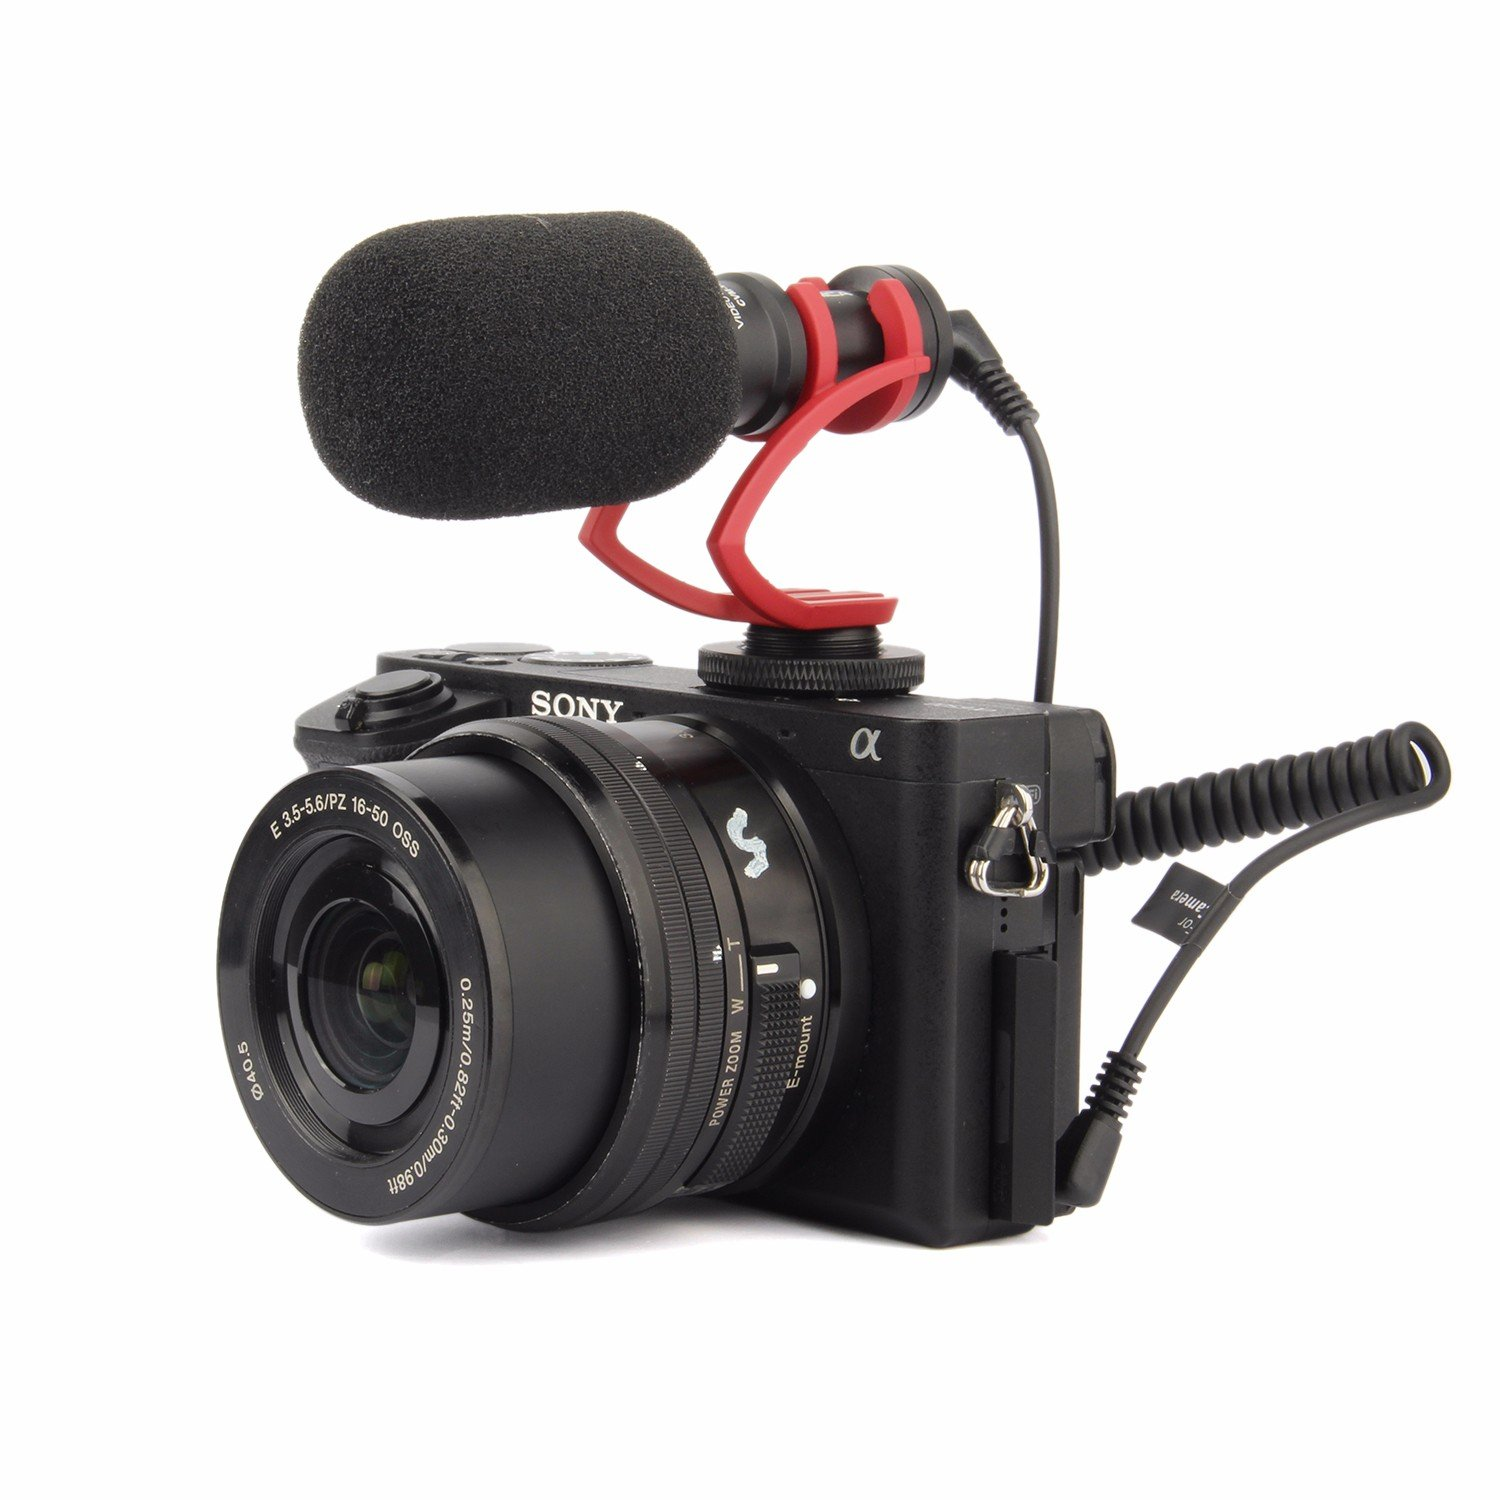 EACHSHOT Comica CVM-VM10 II Cardioid Directional Shotgun Video Microphone for DJI OSMO Smartphone GoPro and Micro Camera with Black Shock-Mount Windscreen Wind Muff and Carrying Case (Red)